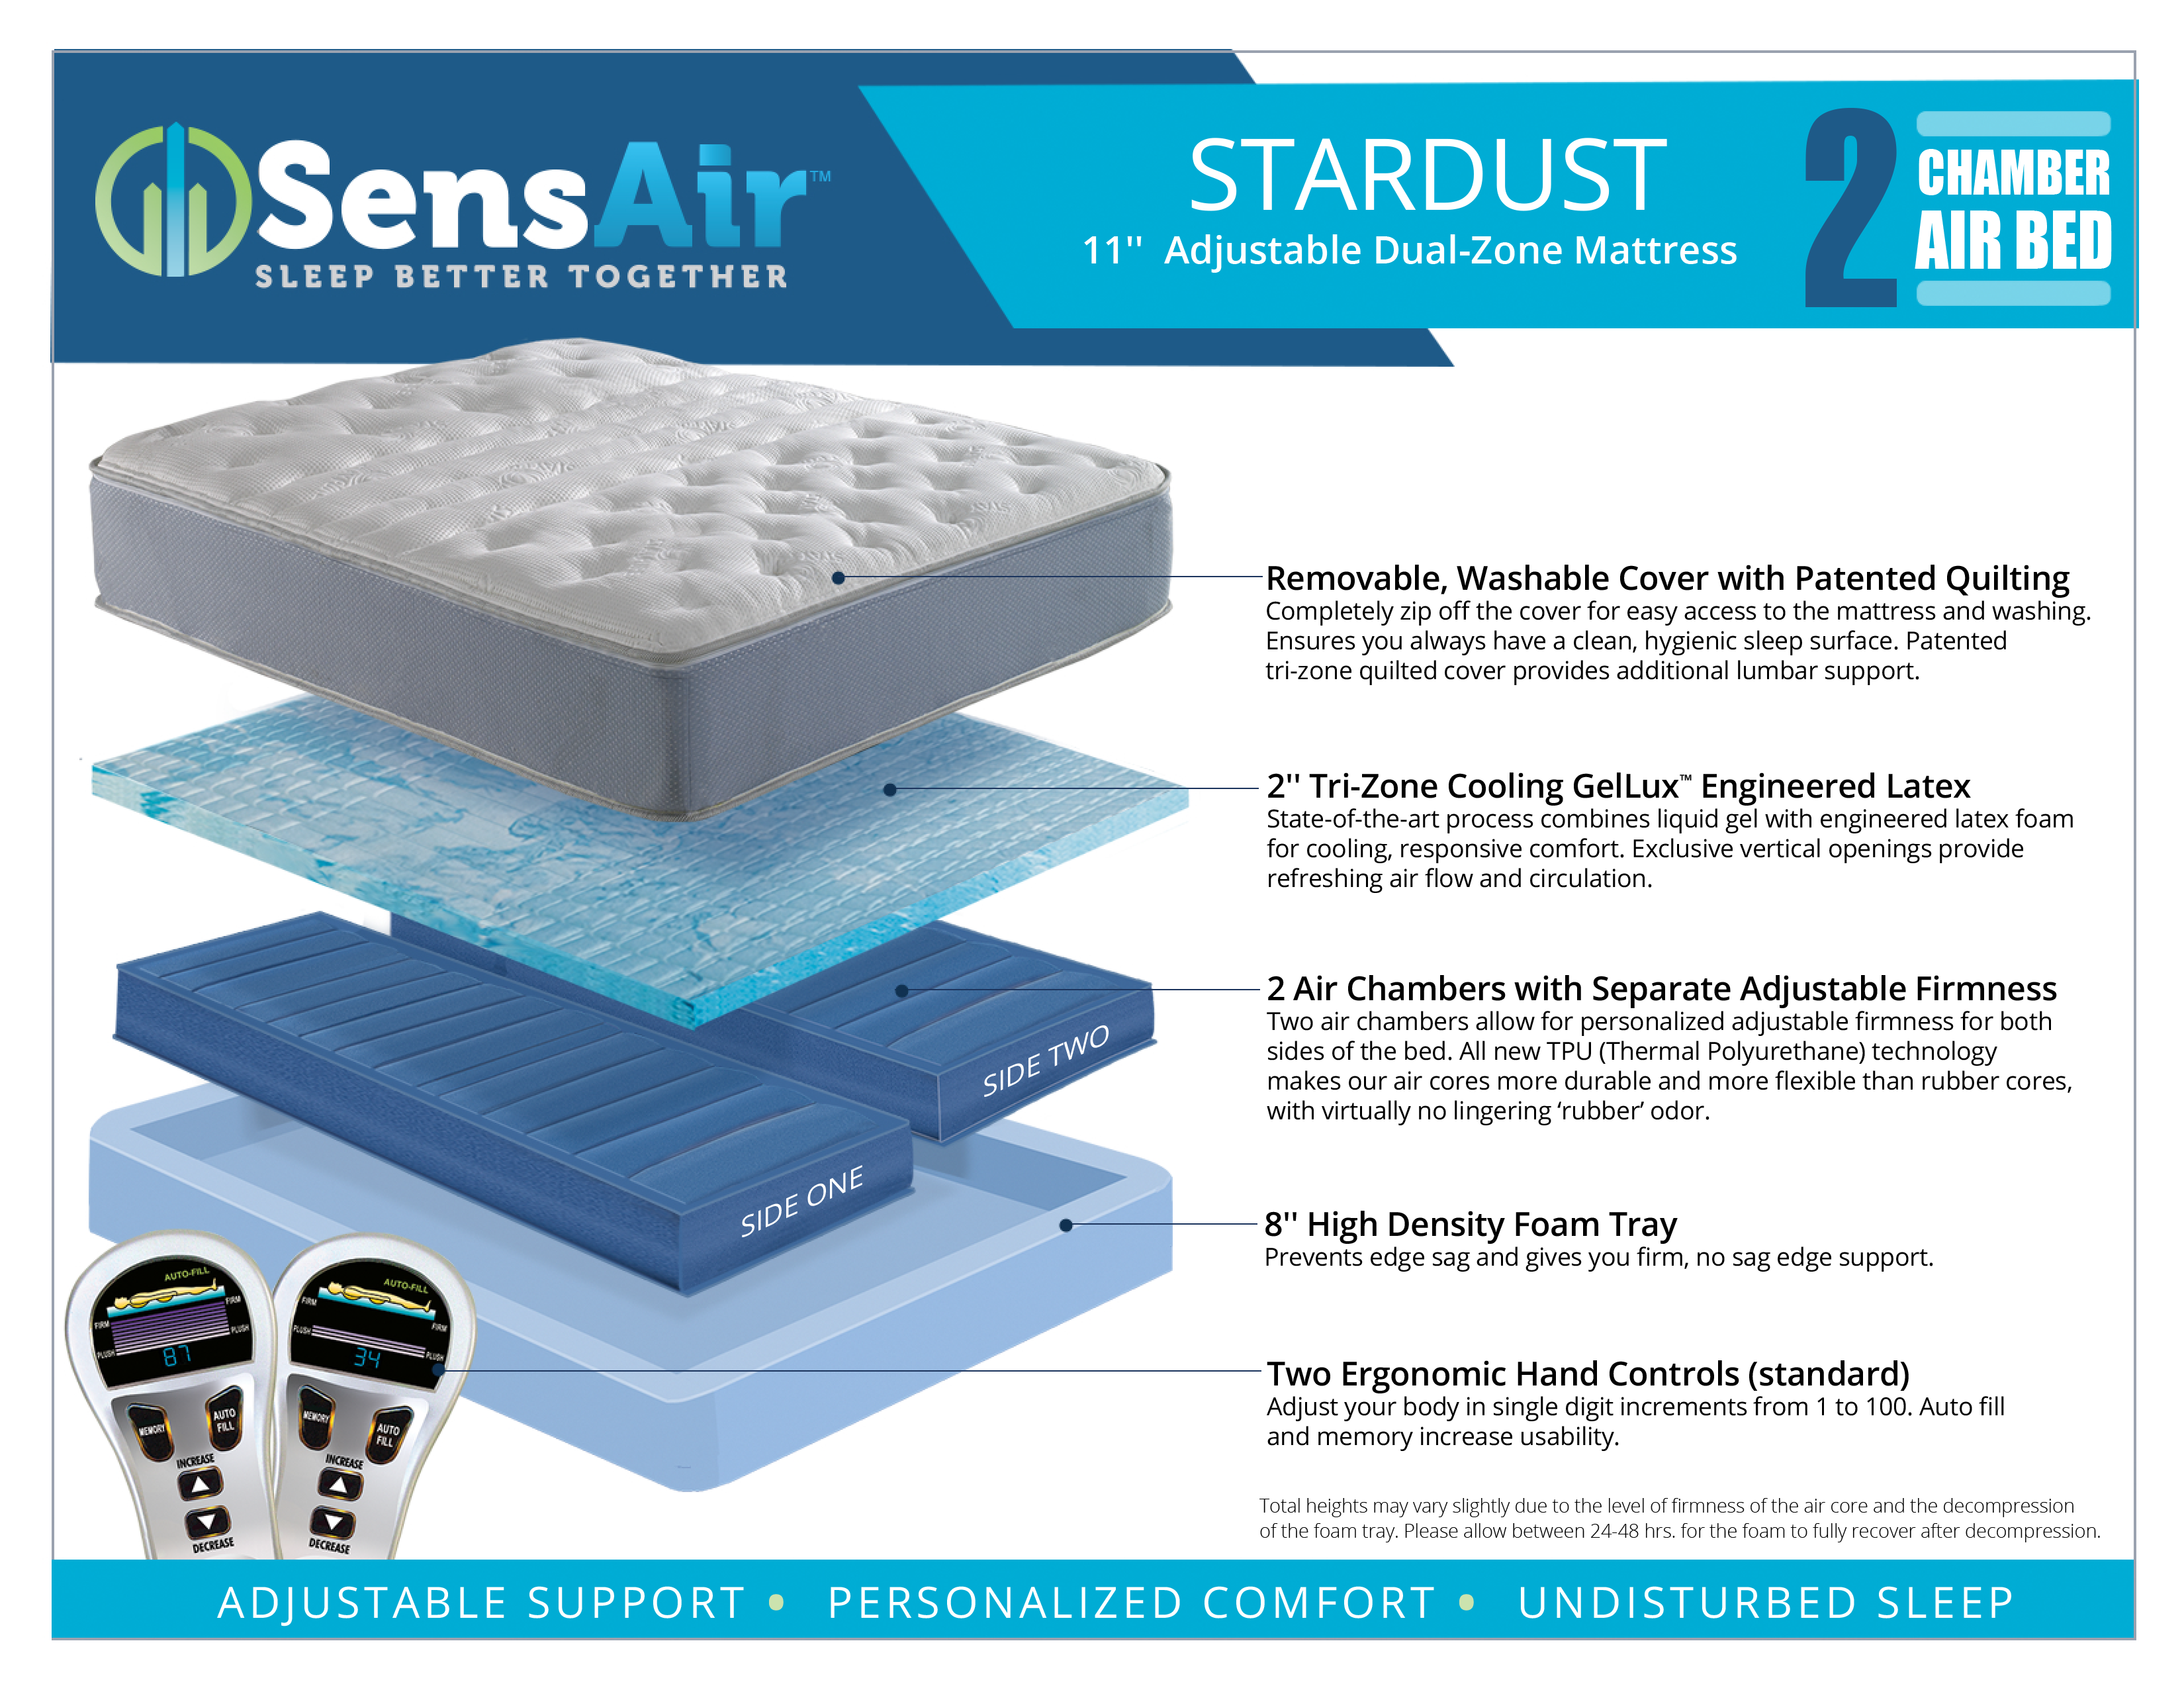 Stardust-2.Chamber.Air.Bed